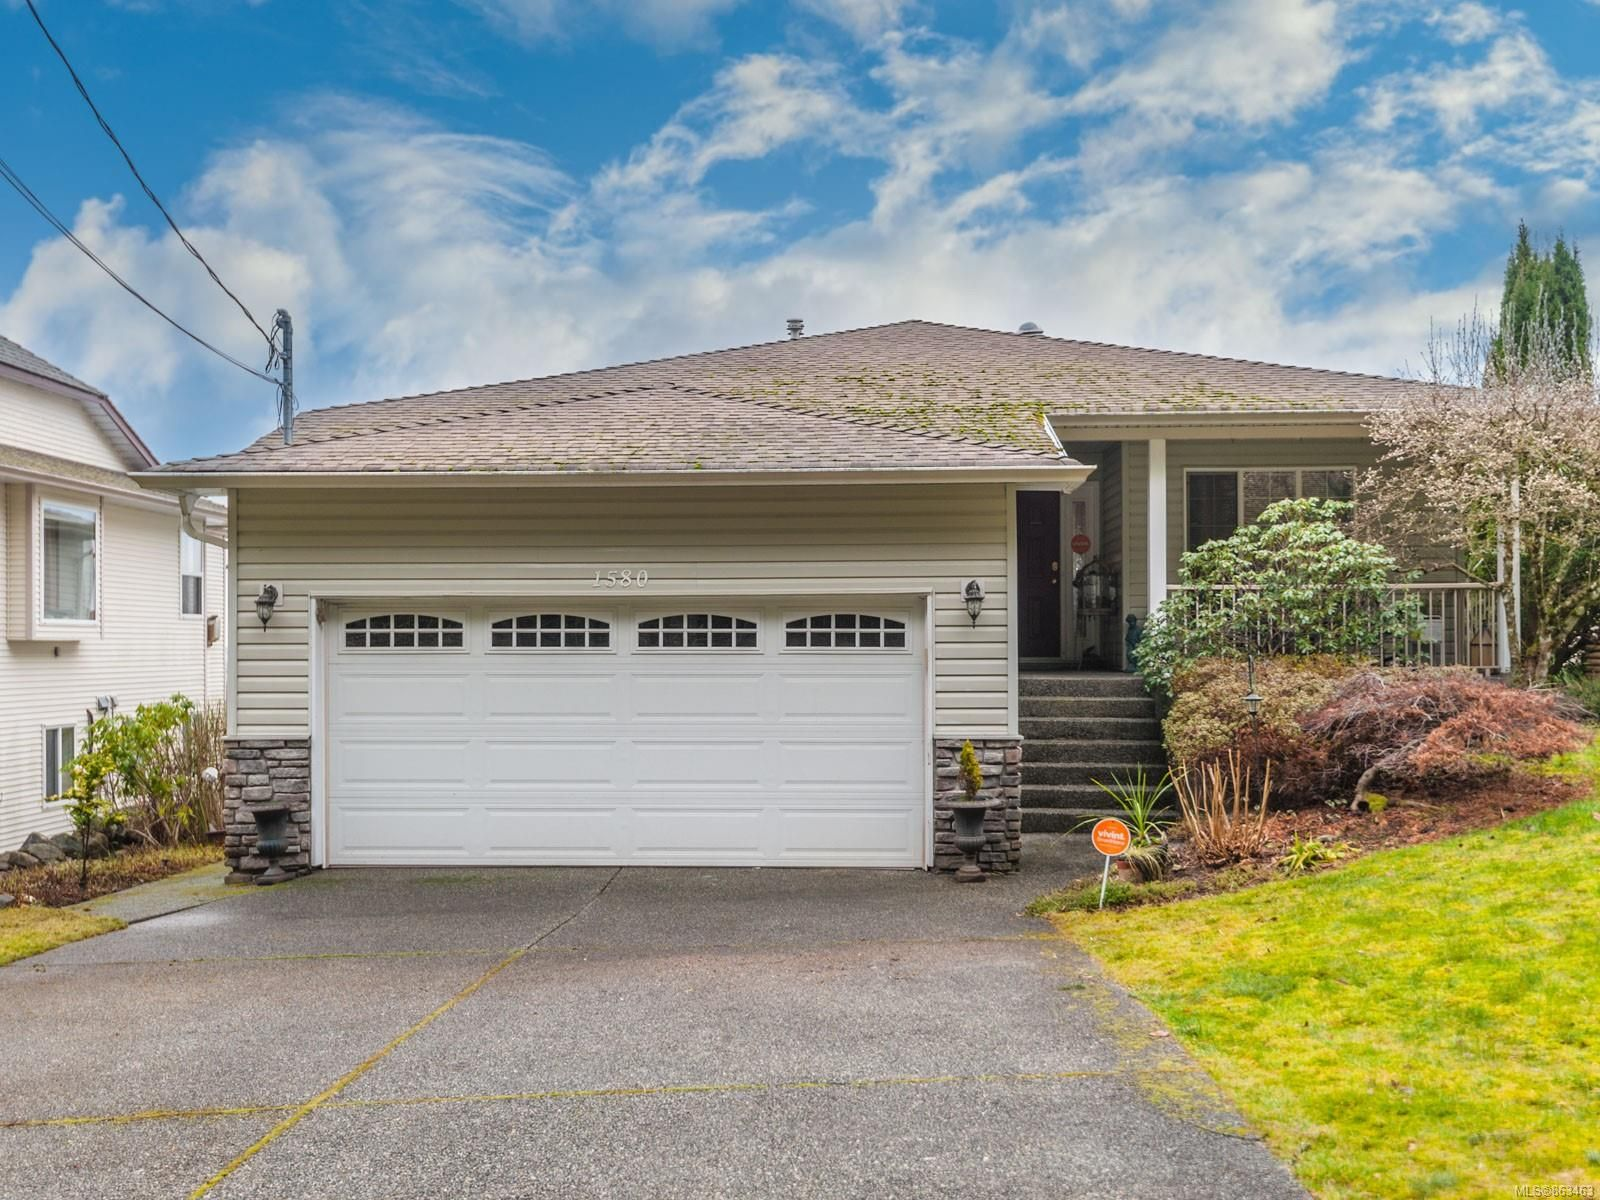 Main Photo: 1580 COLLEGE Dr in : Na University District House for sale (Nanaimo)  : MLS®# 863463